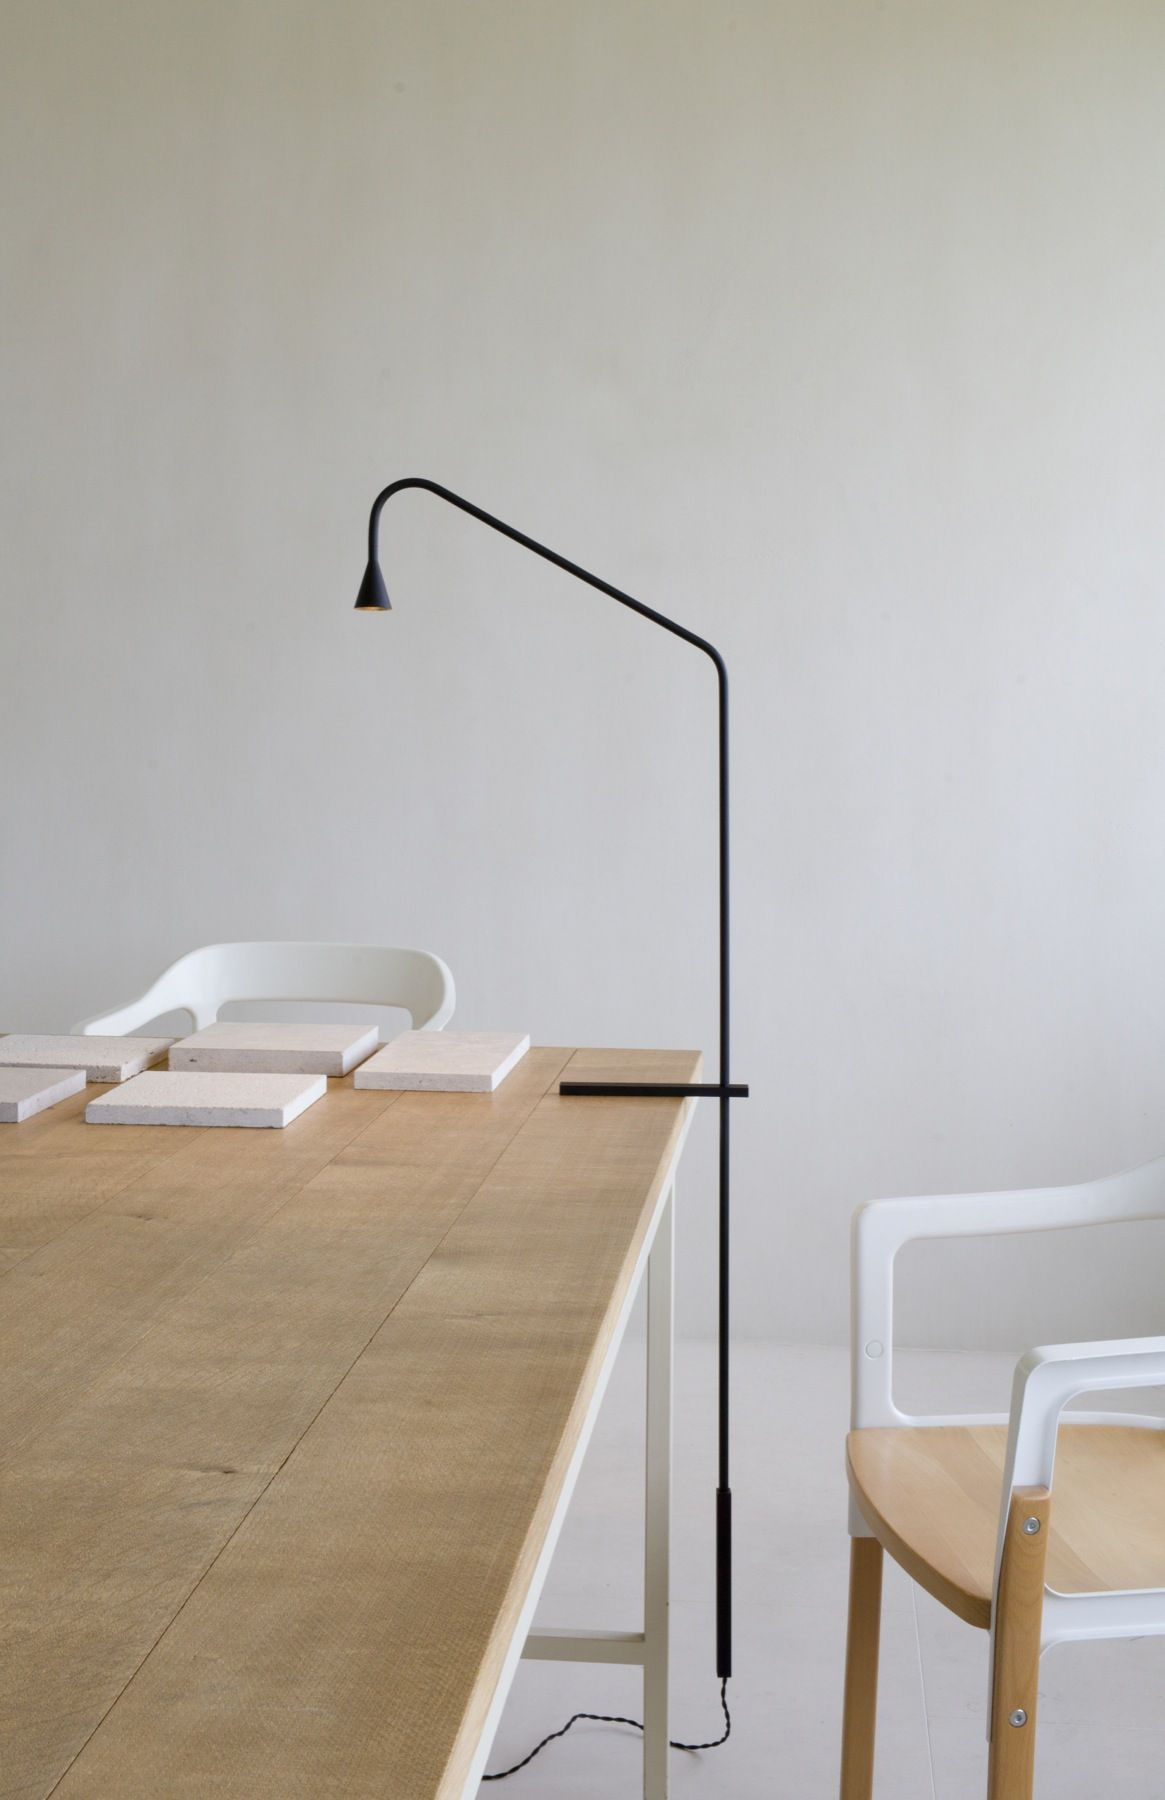 Austere Lamp By Hans Verstuyft Lights Interiors And Spaces # Muebles Neoline